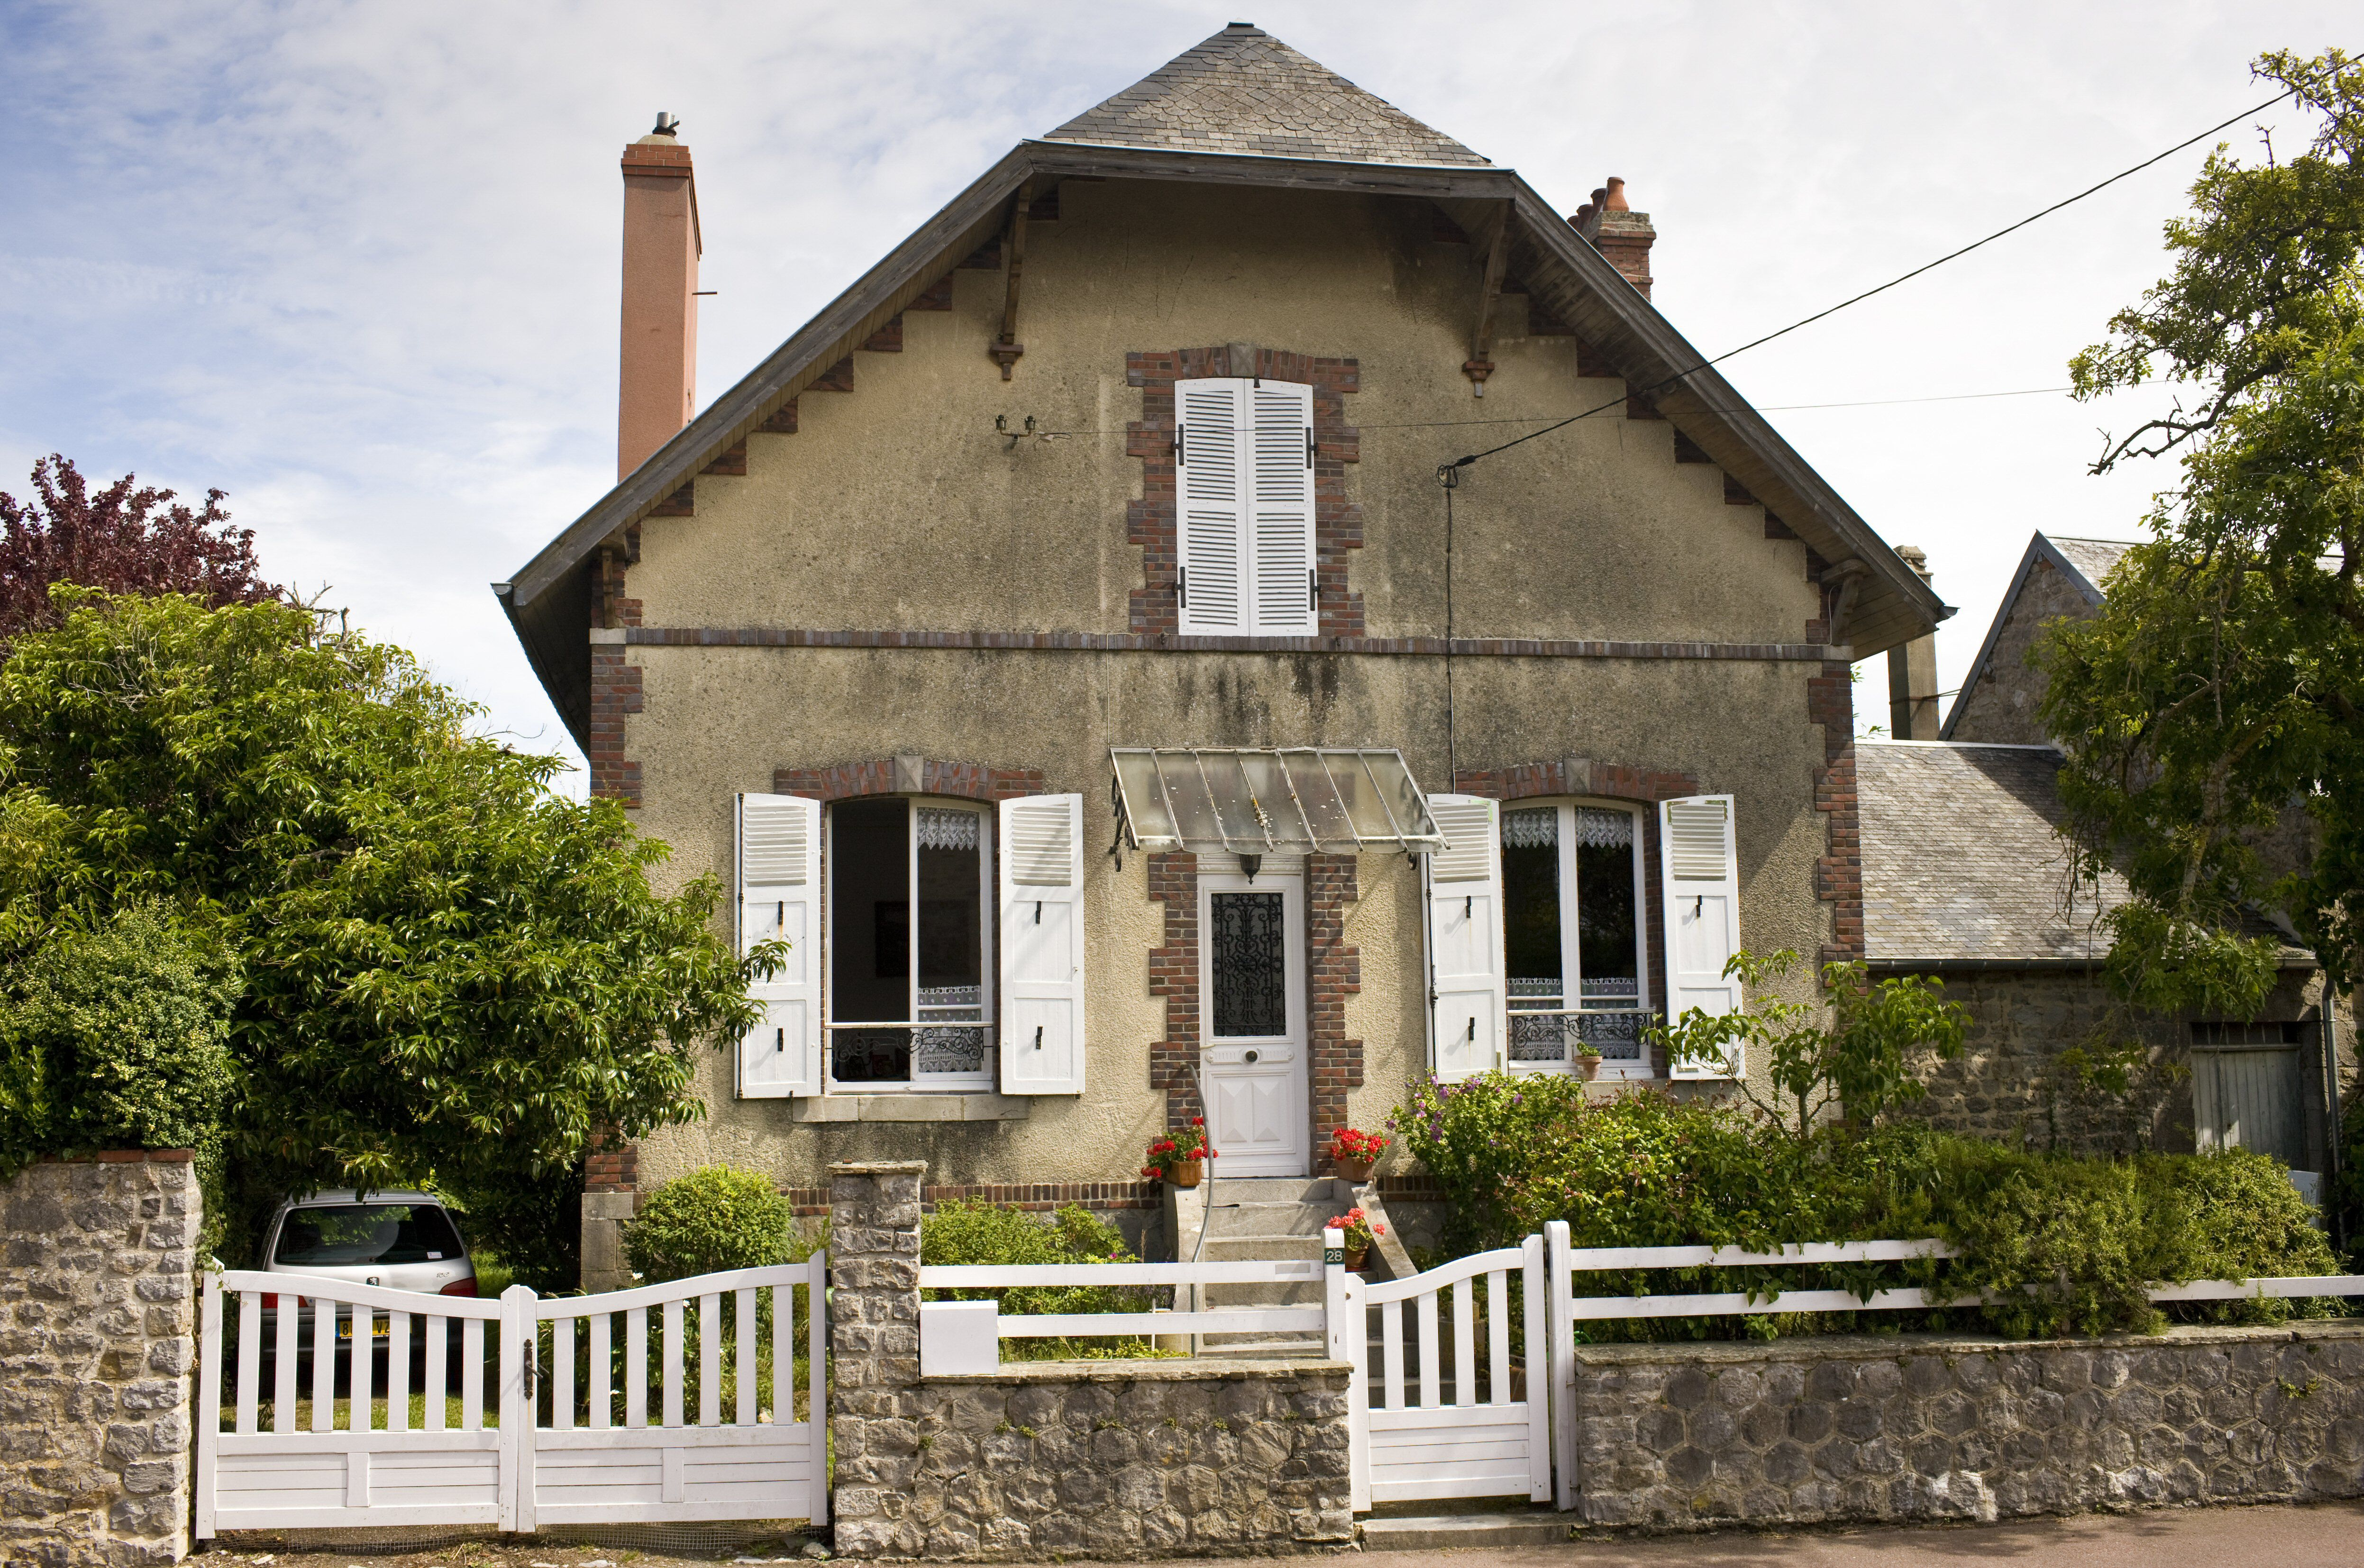 two-story stone house with jerkinhead roof, center door, white shutters, quoin decoration